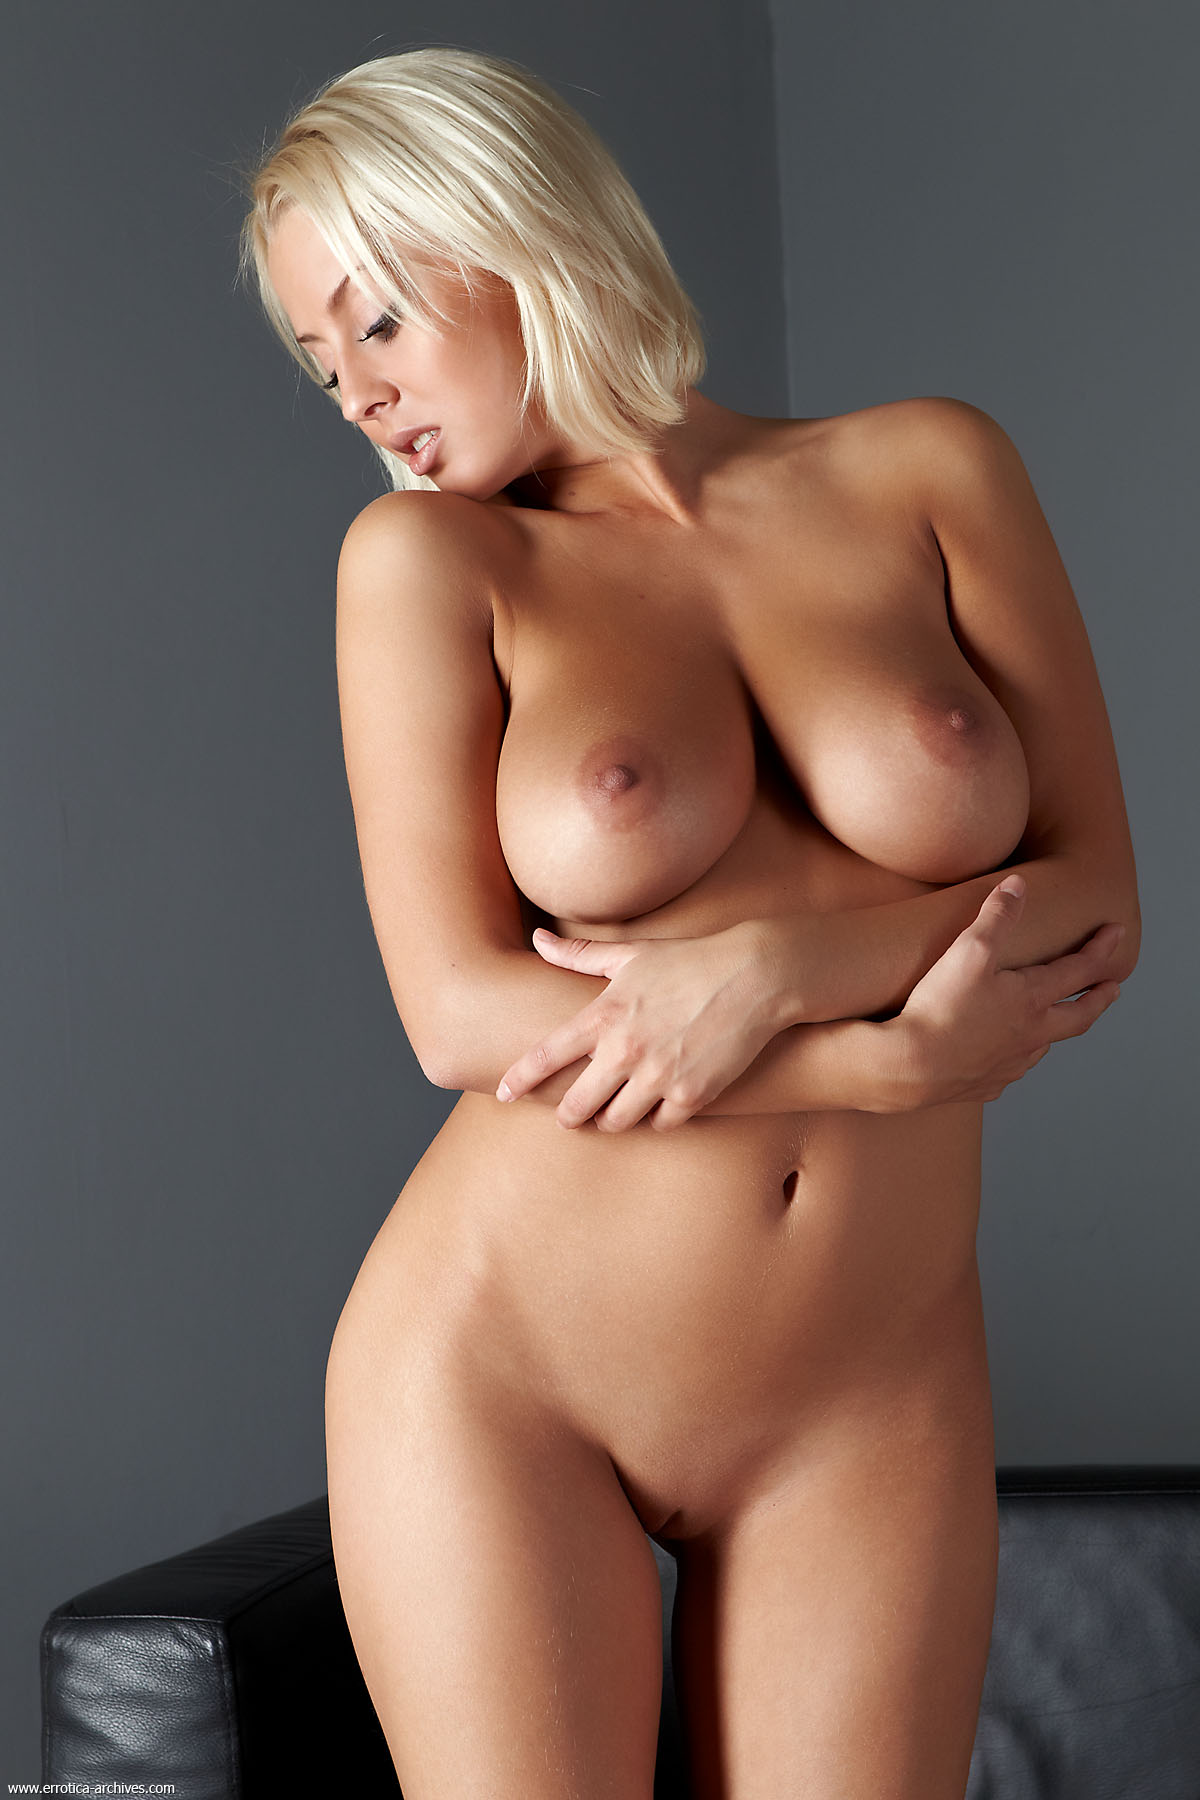 nude-blonde-girls-boobs-mix-vol7-03